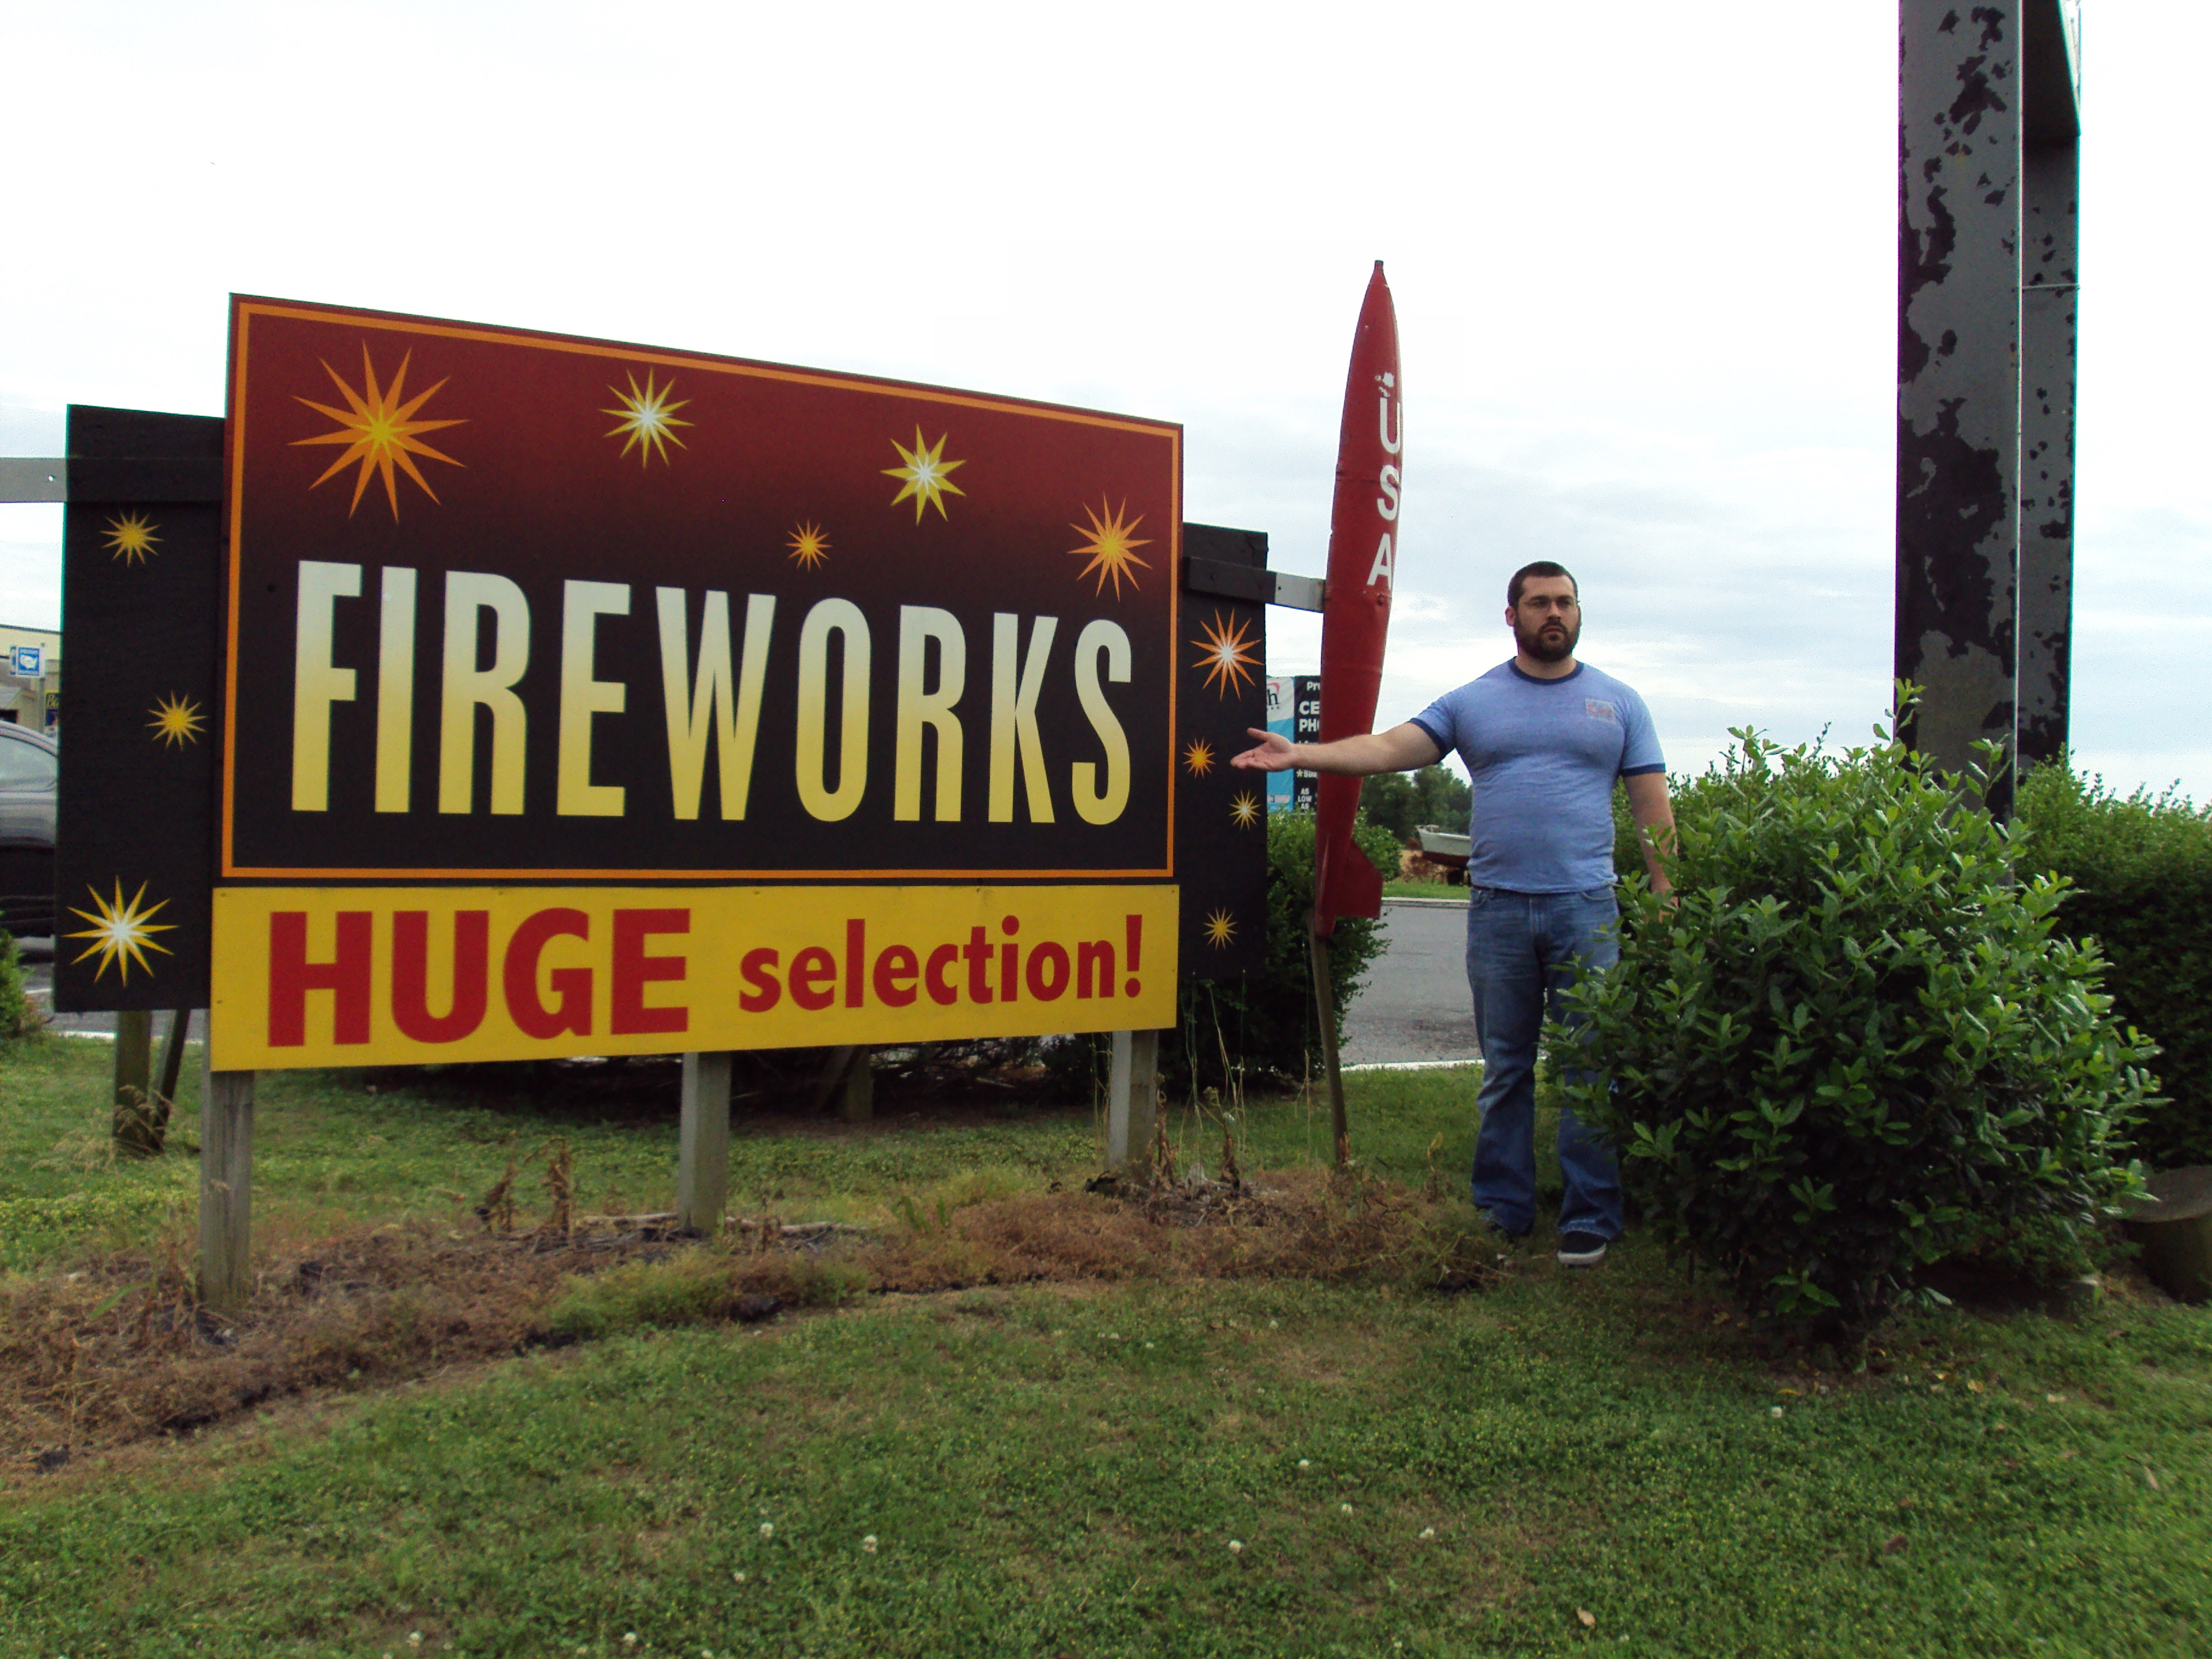 They have fireworks in the south